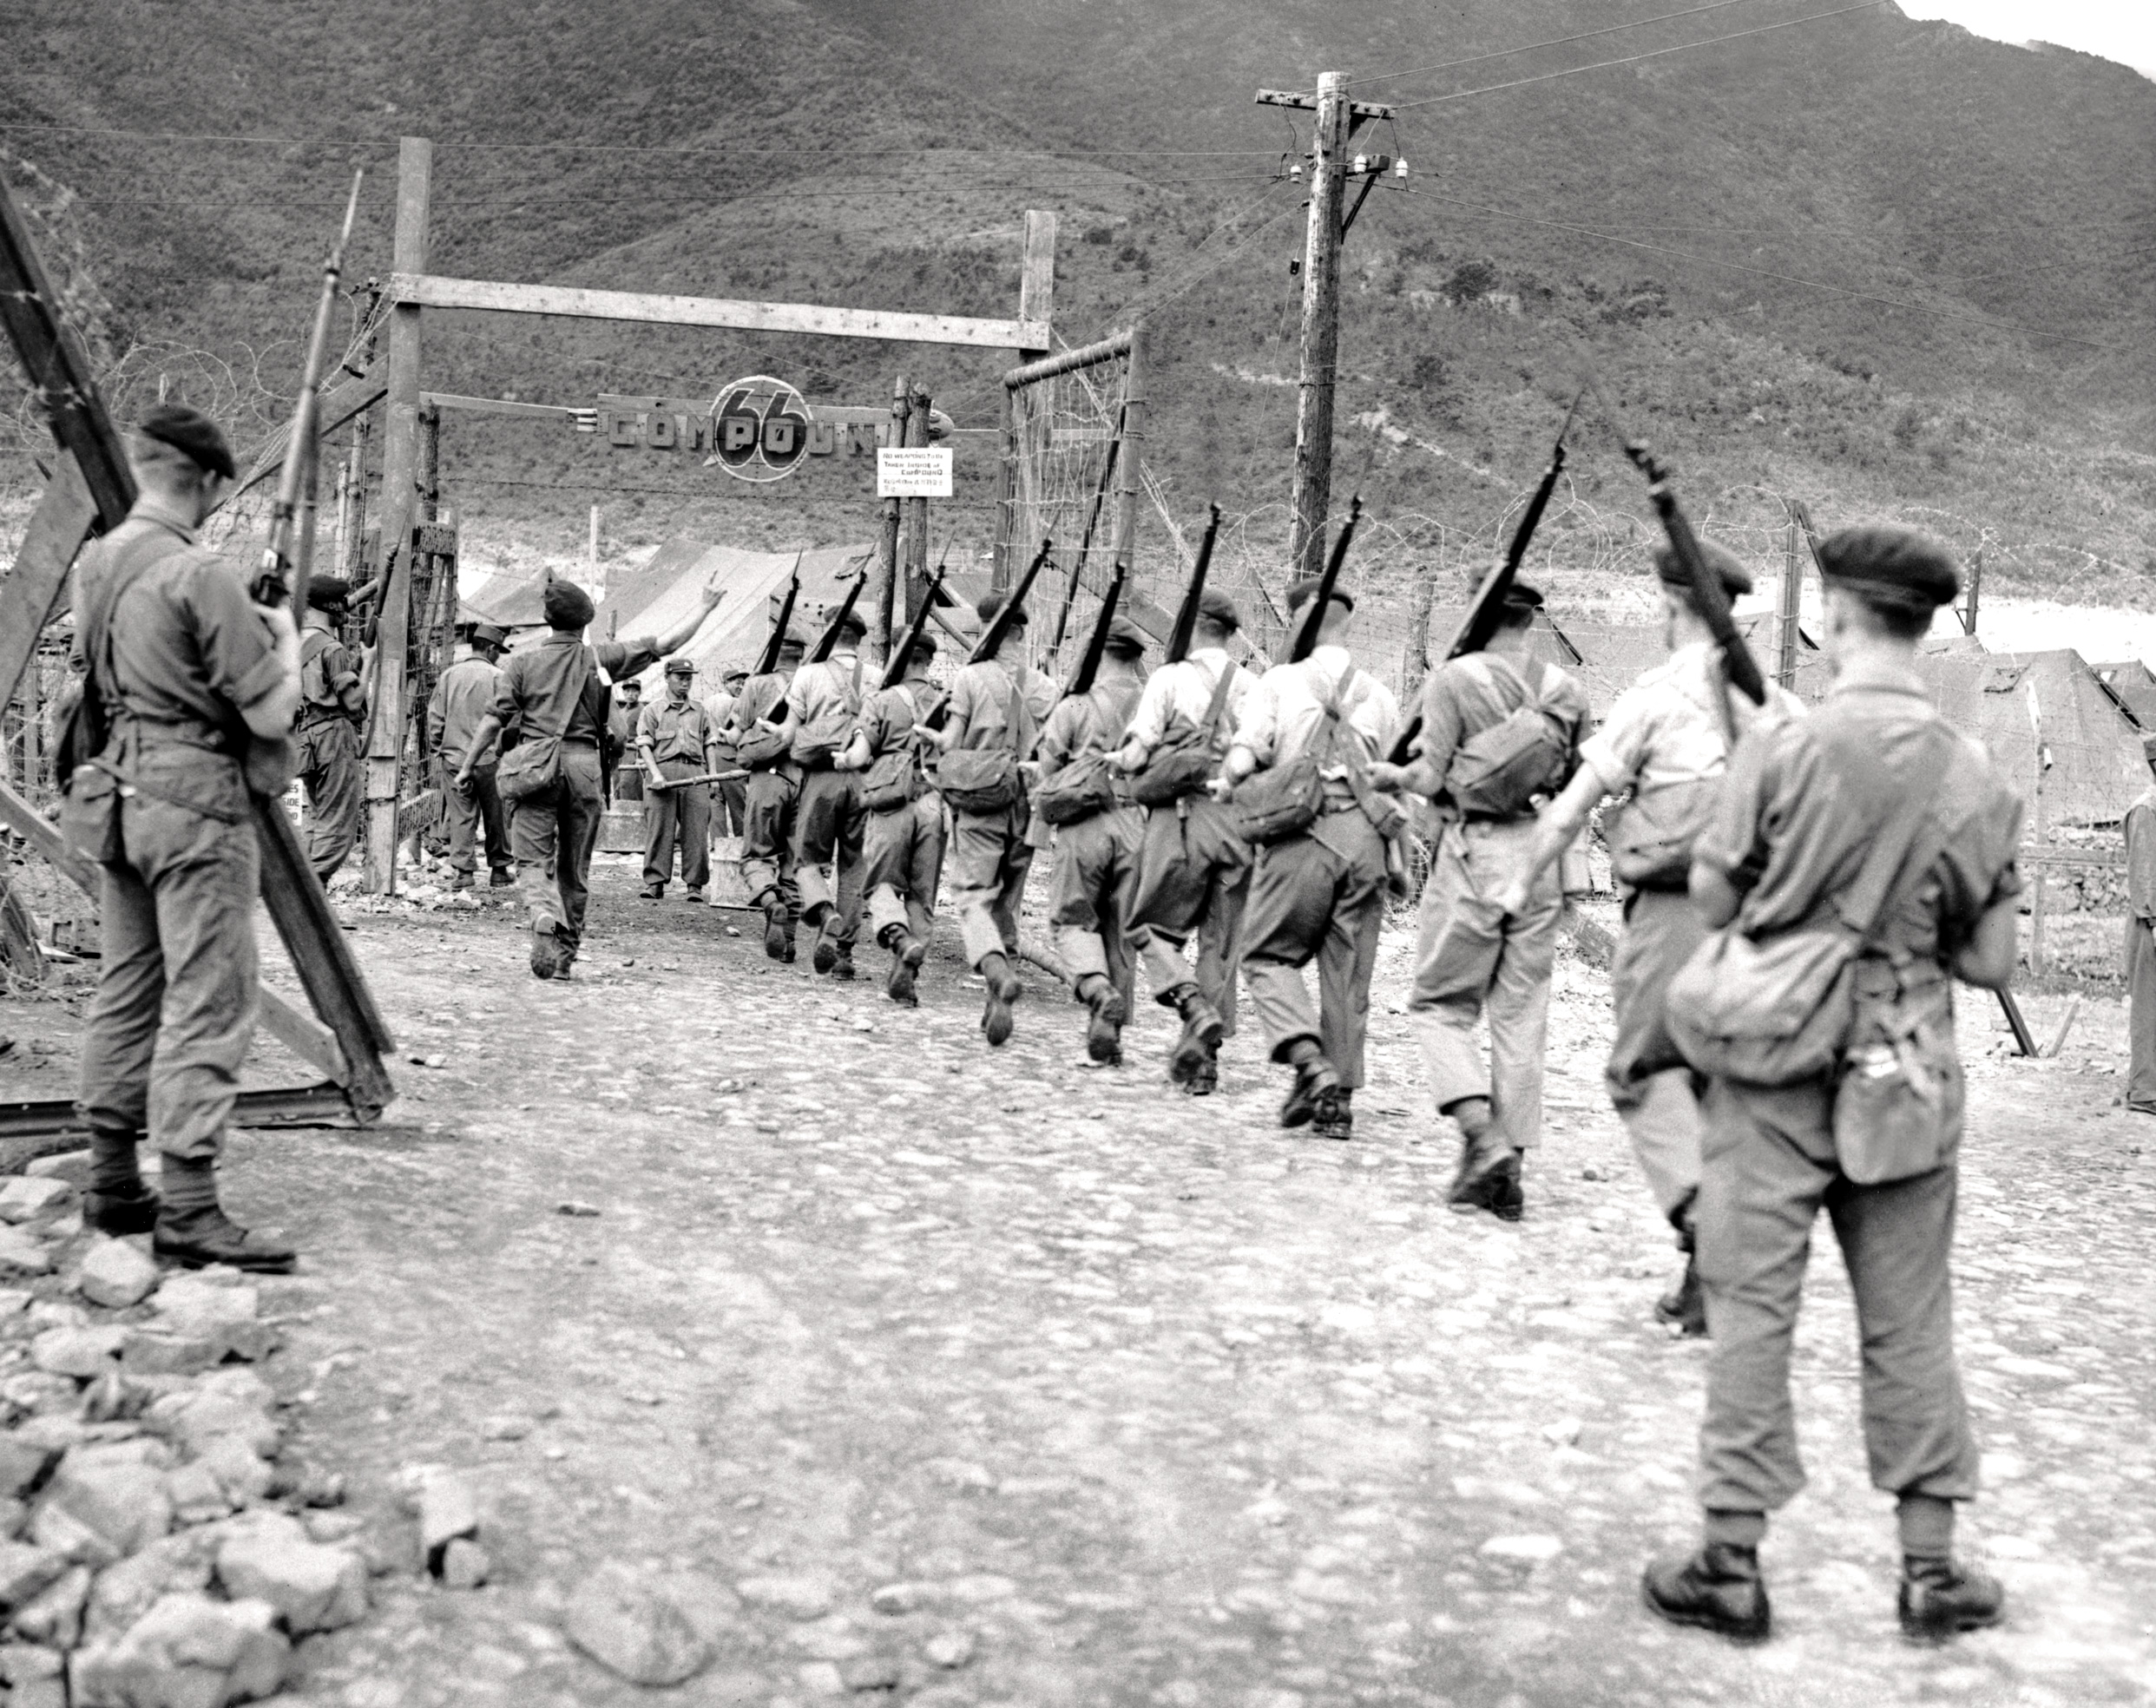 how far was the korean war a A military failure of the korean war was the 300 mile us retreat, which was a result of chinese intervention intervention was a risky move for a political disadvantage of the korean war was an increase in anti-communist paranoia, which was especially represented through the senator joseph.